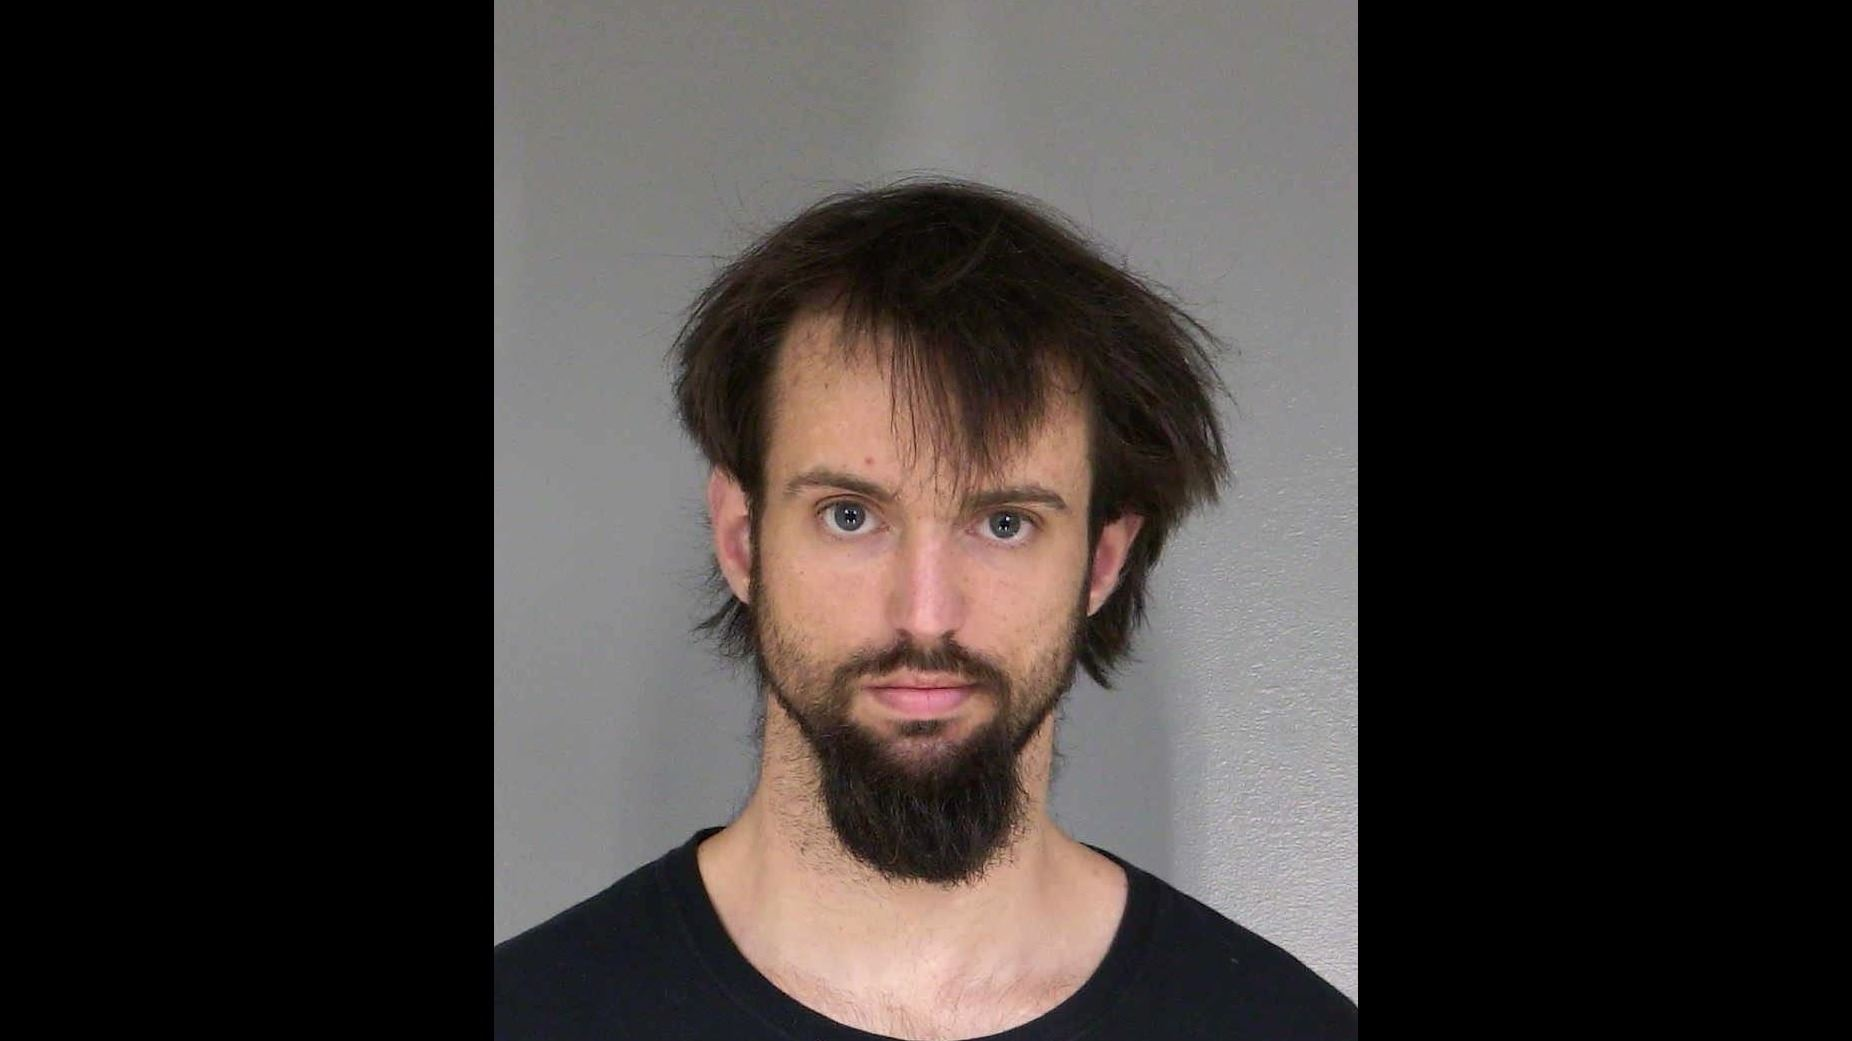 CULLEN BOOKING PHOTO